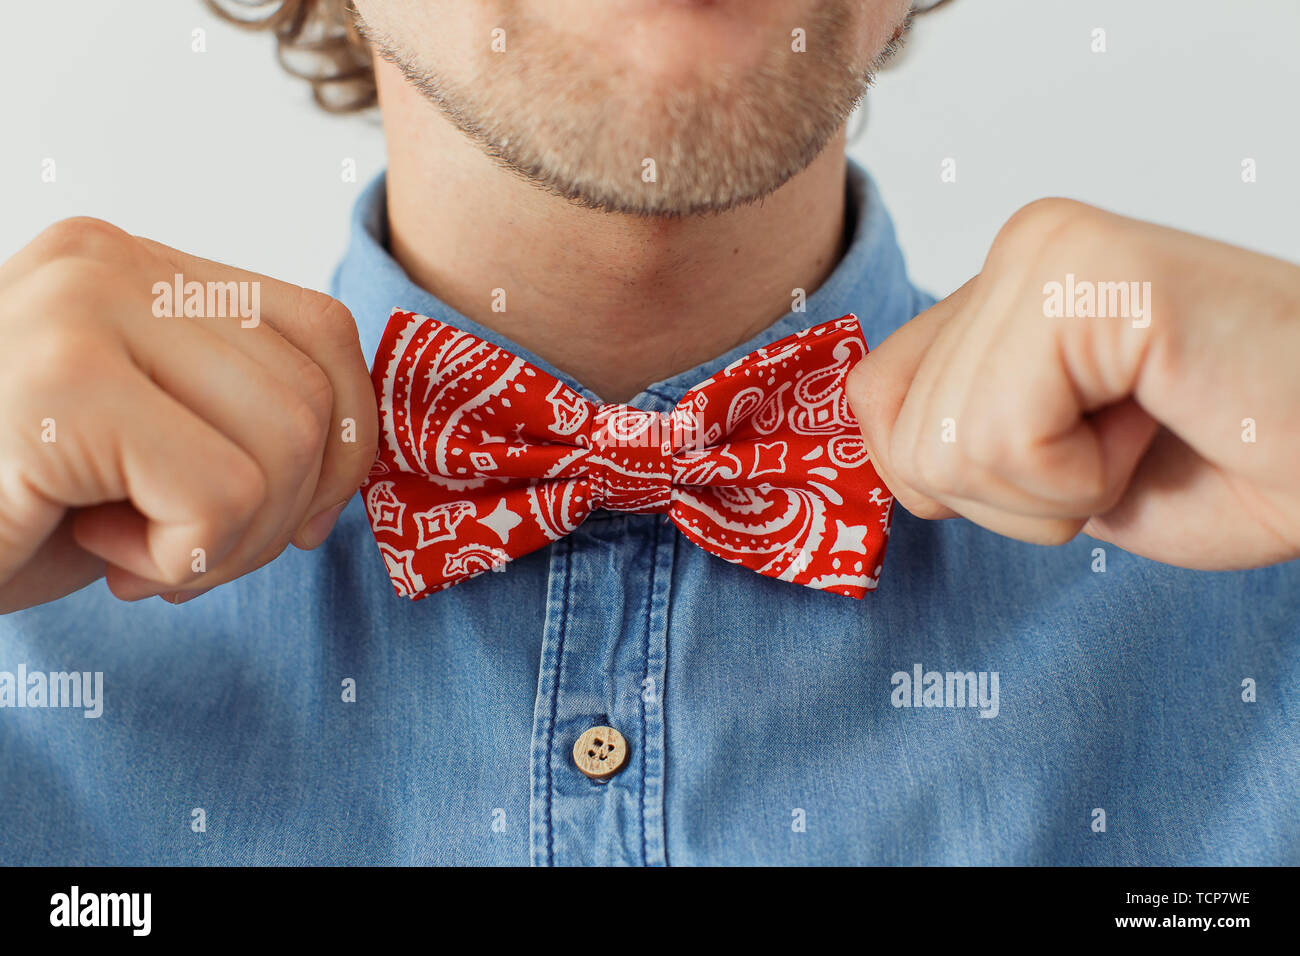 Man with beard wearing bowtie, hipster style - Stock Image